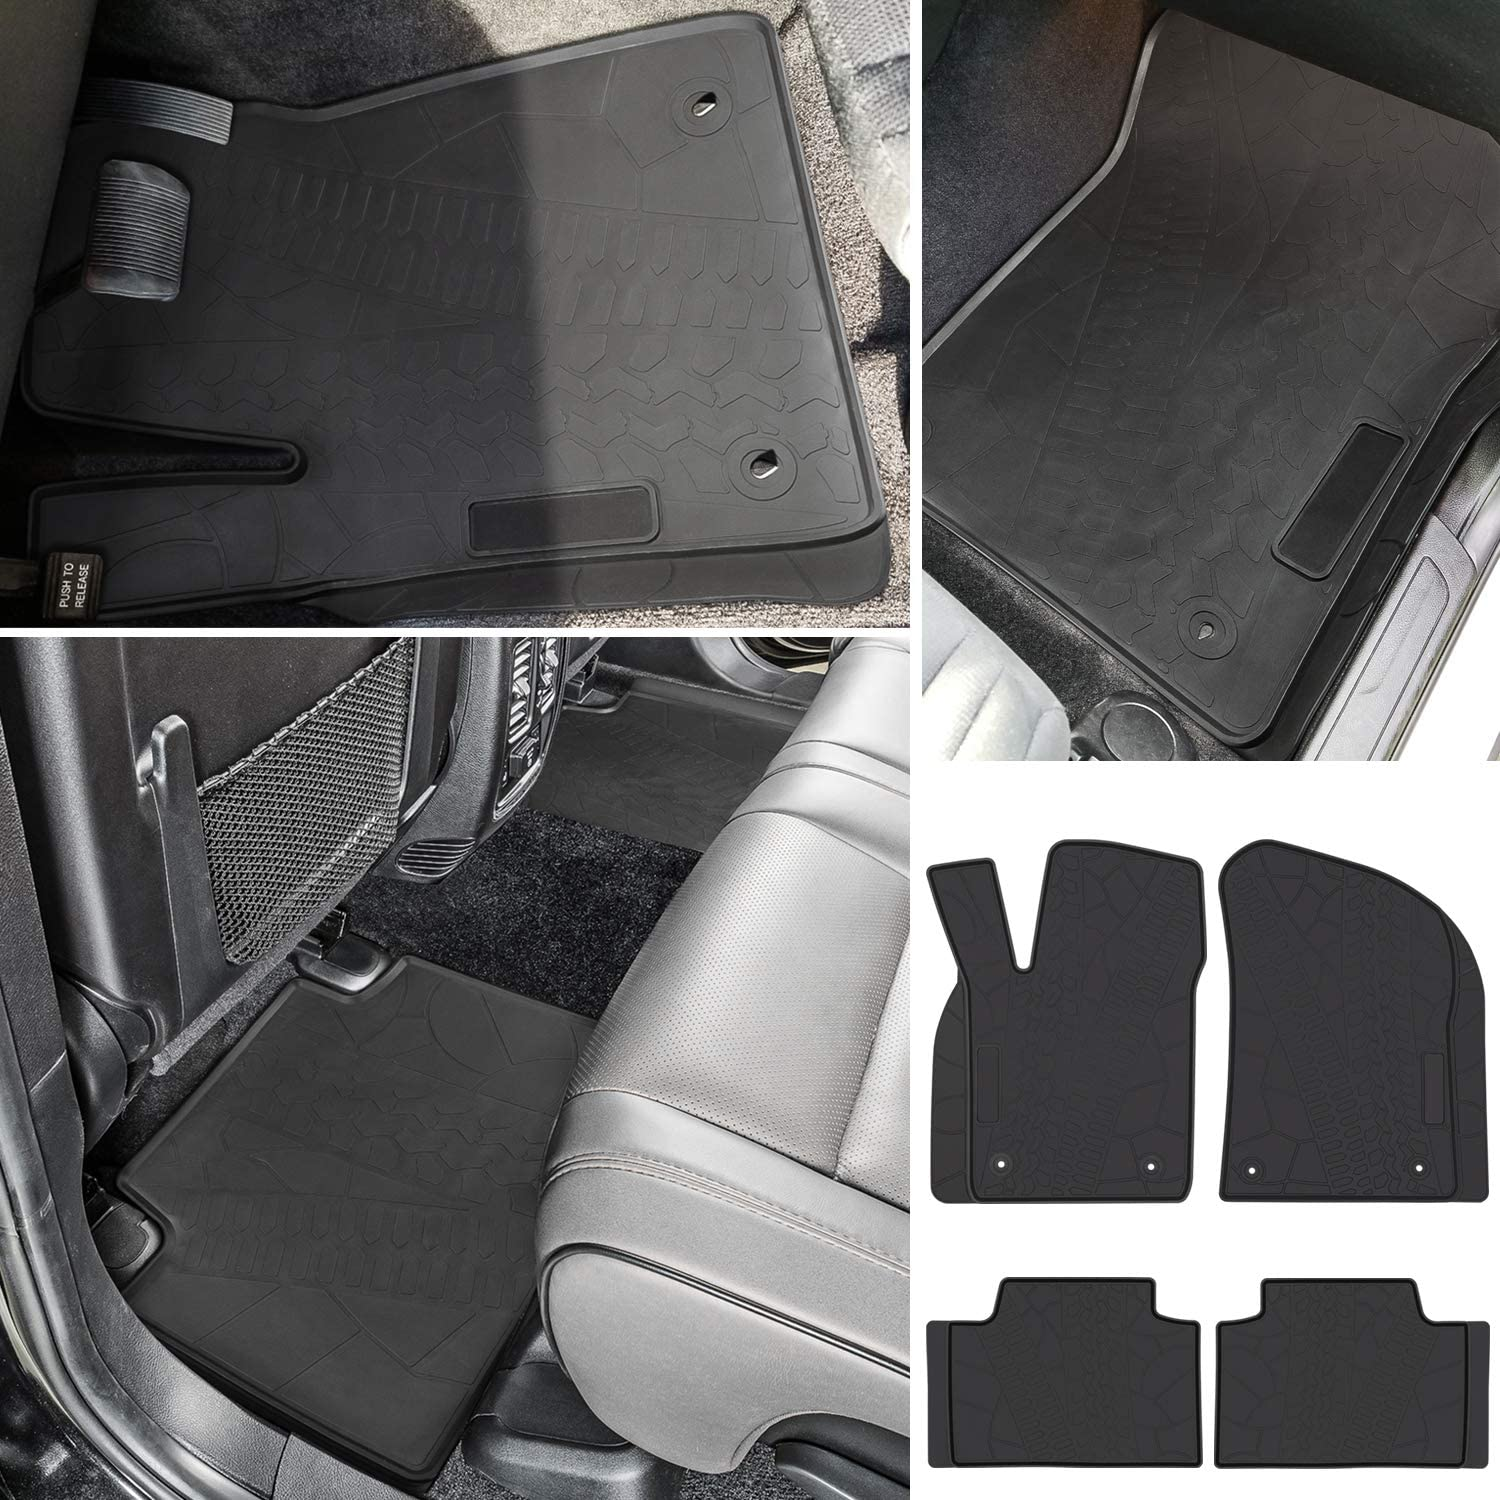 Black 4PCS E-cowlboy Floor Mat for Jeep Grand Cherokee 2016 2017 2018 2019 2020 Heavy Duty Rubber Front+Rear Car Liner Carpet All Weather Custom Fit Waterproof Odorless